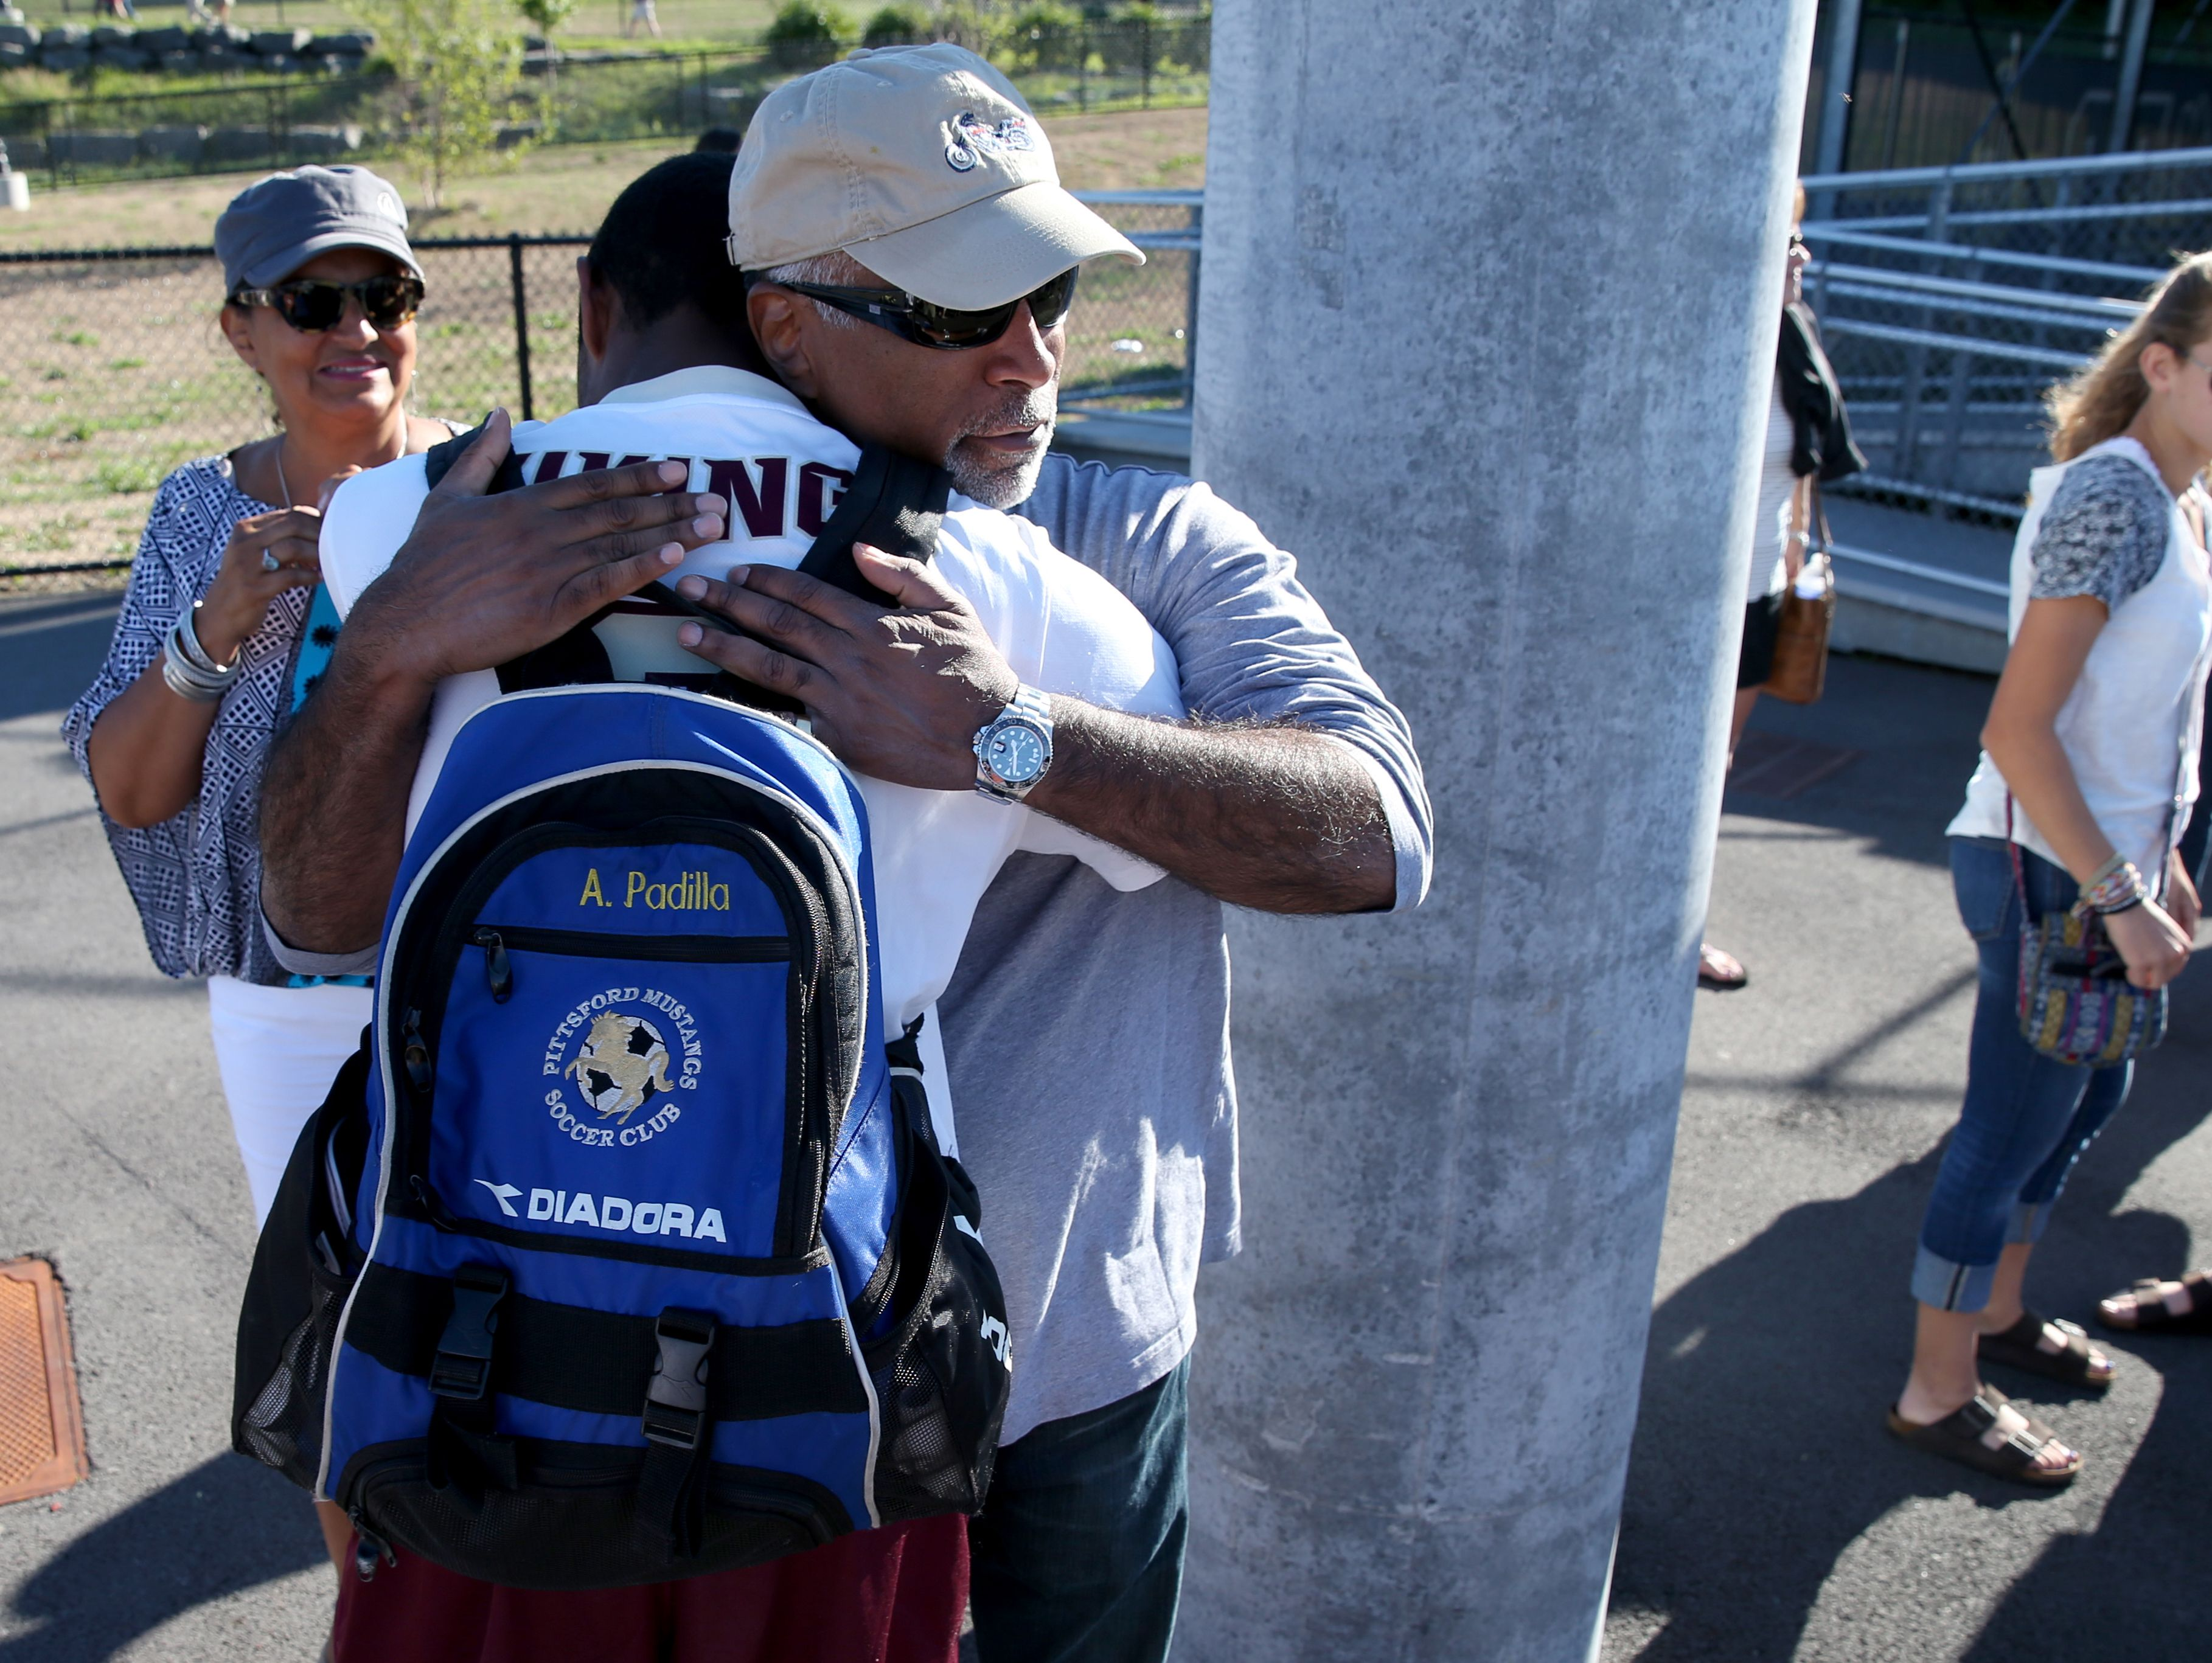 Adrian Padilla gets a hug from his father, Donald, after the Pittsford Mendon boys soccer team defeated Aquinas.